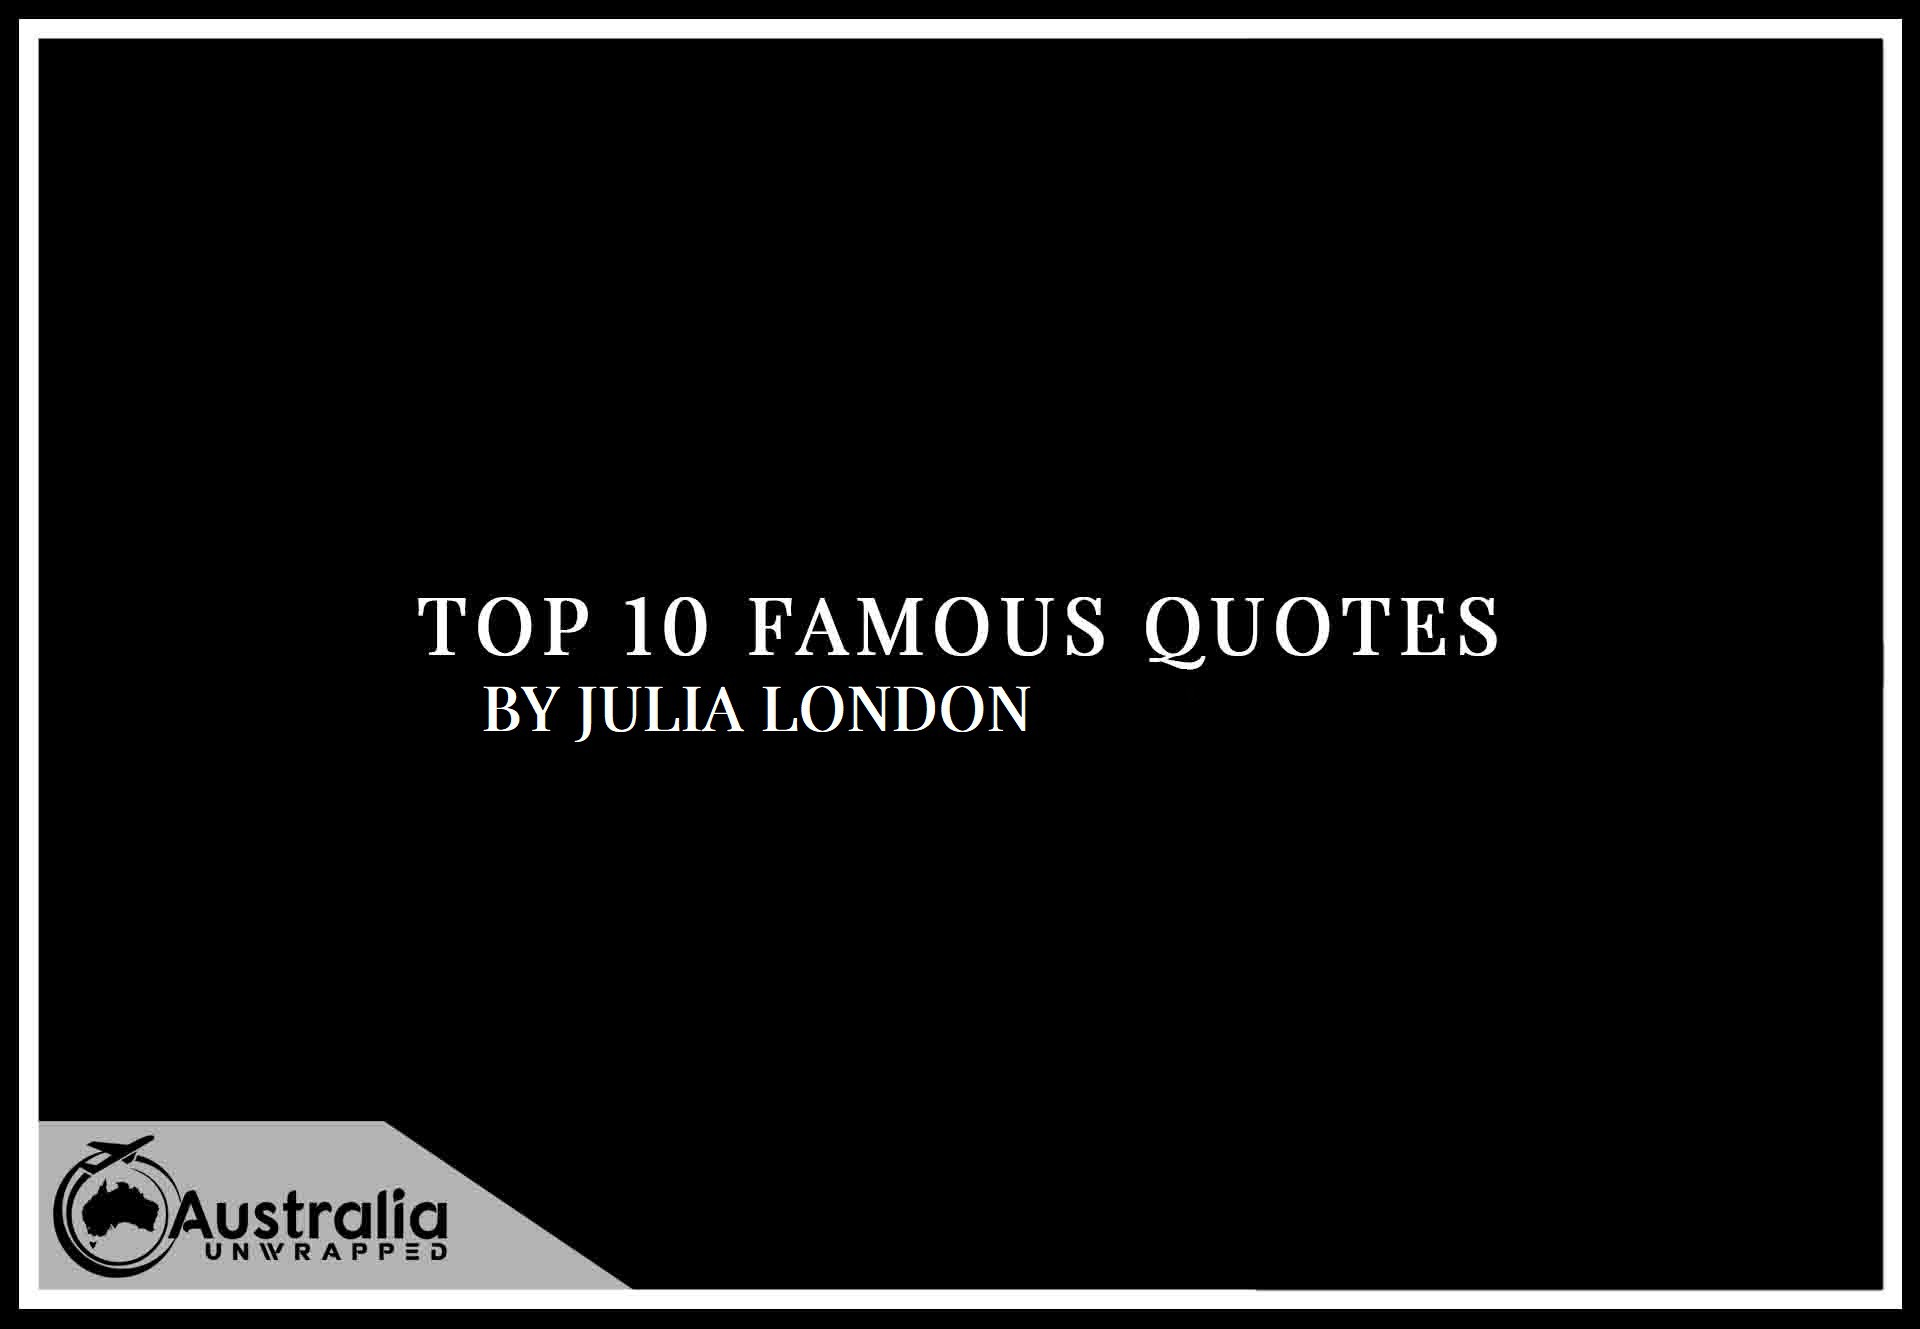 Top 10 Famous Quotes by Author Julia London